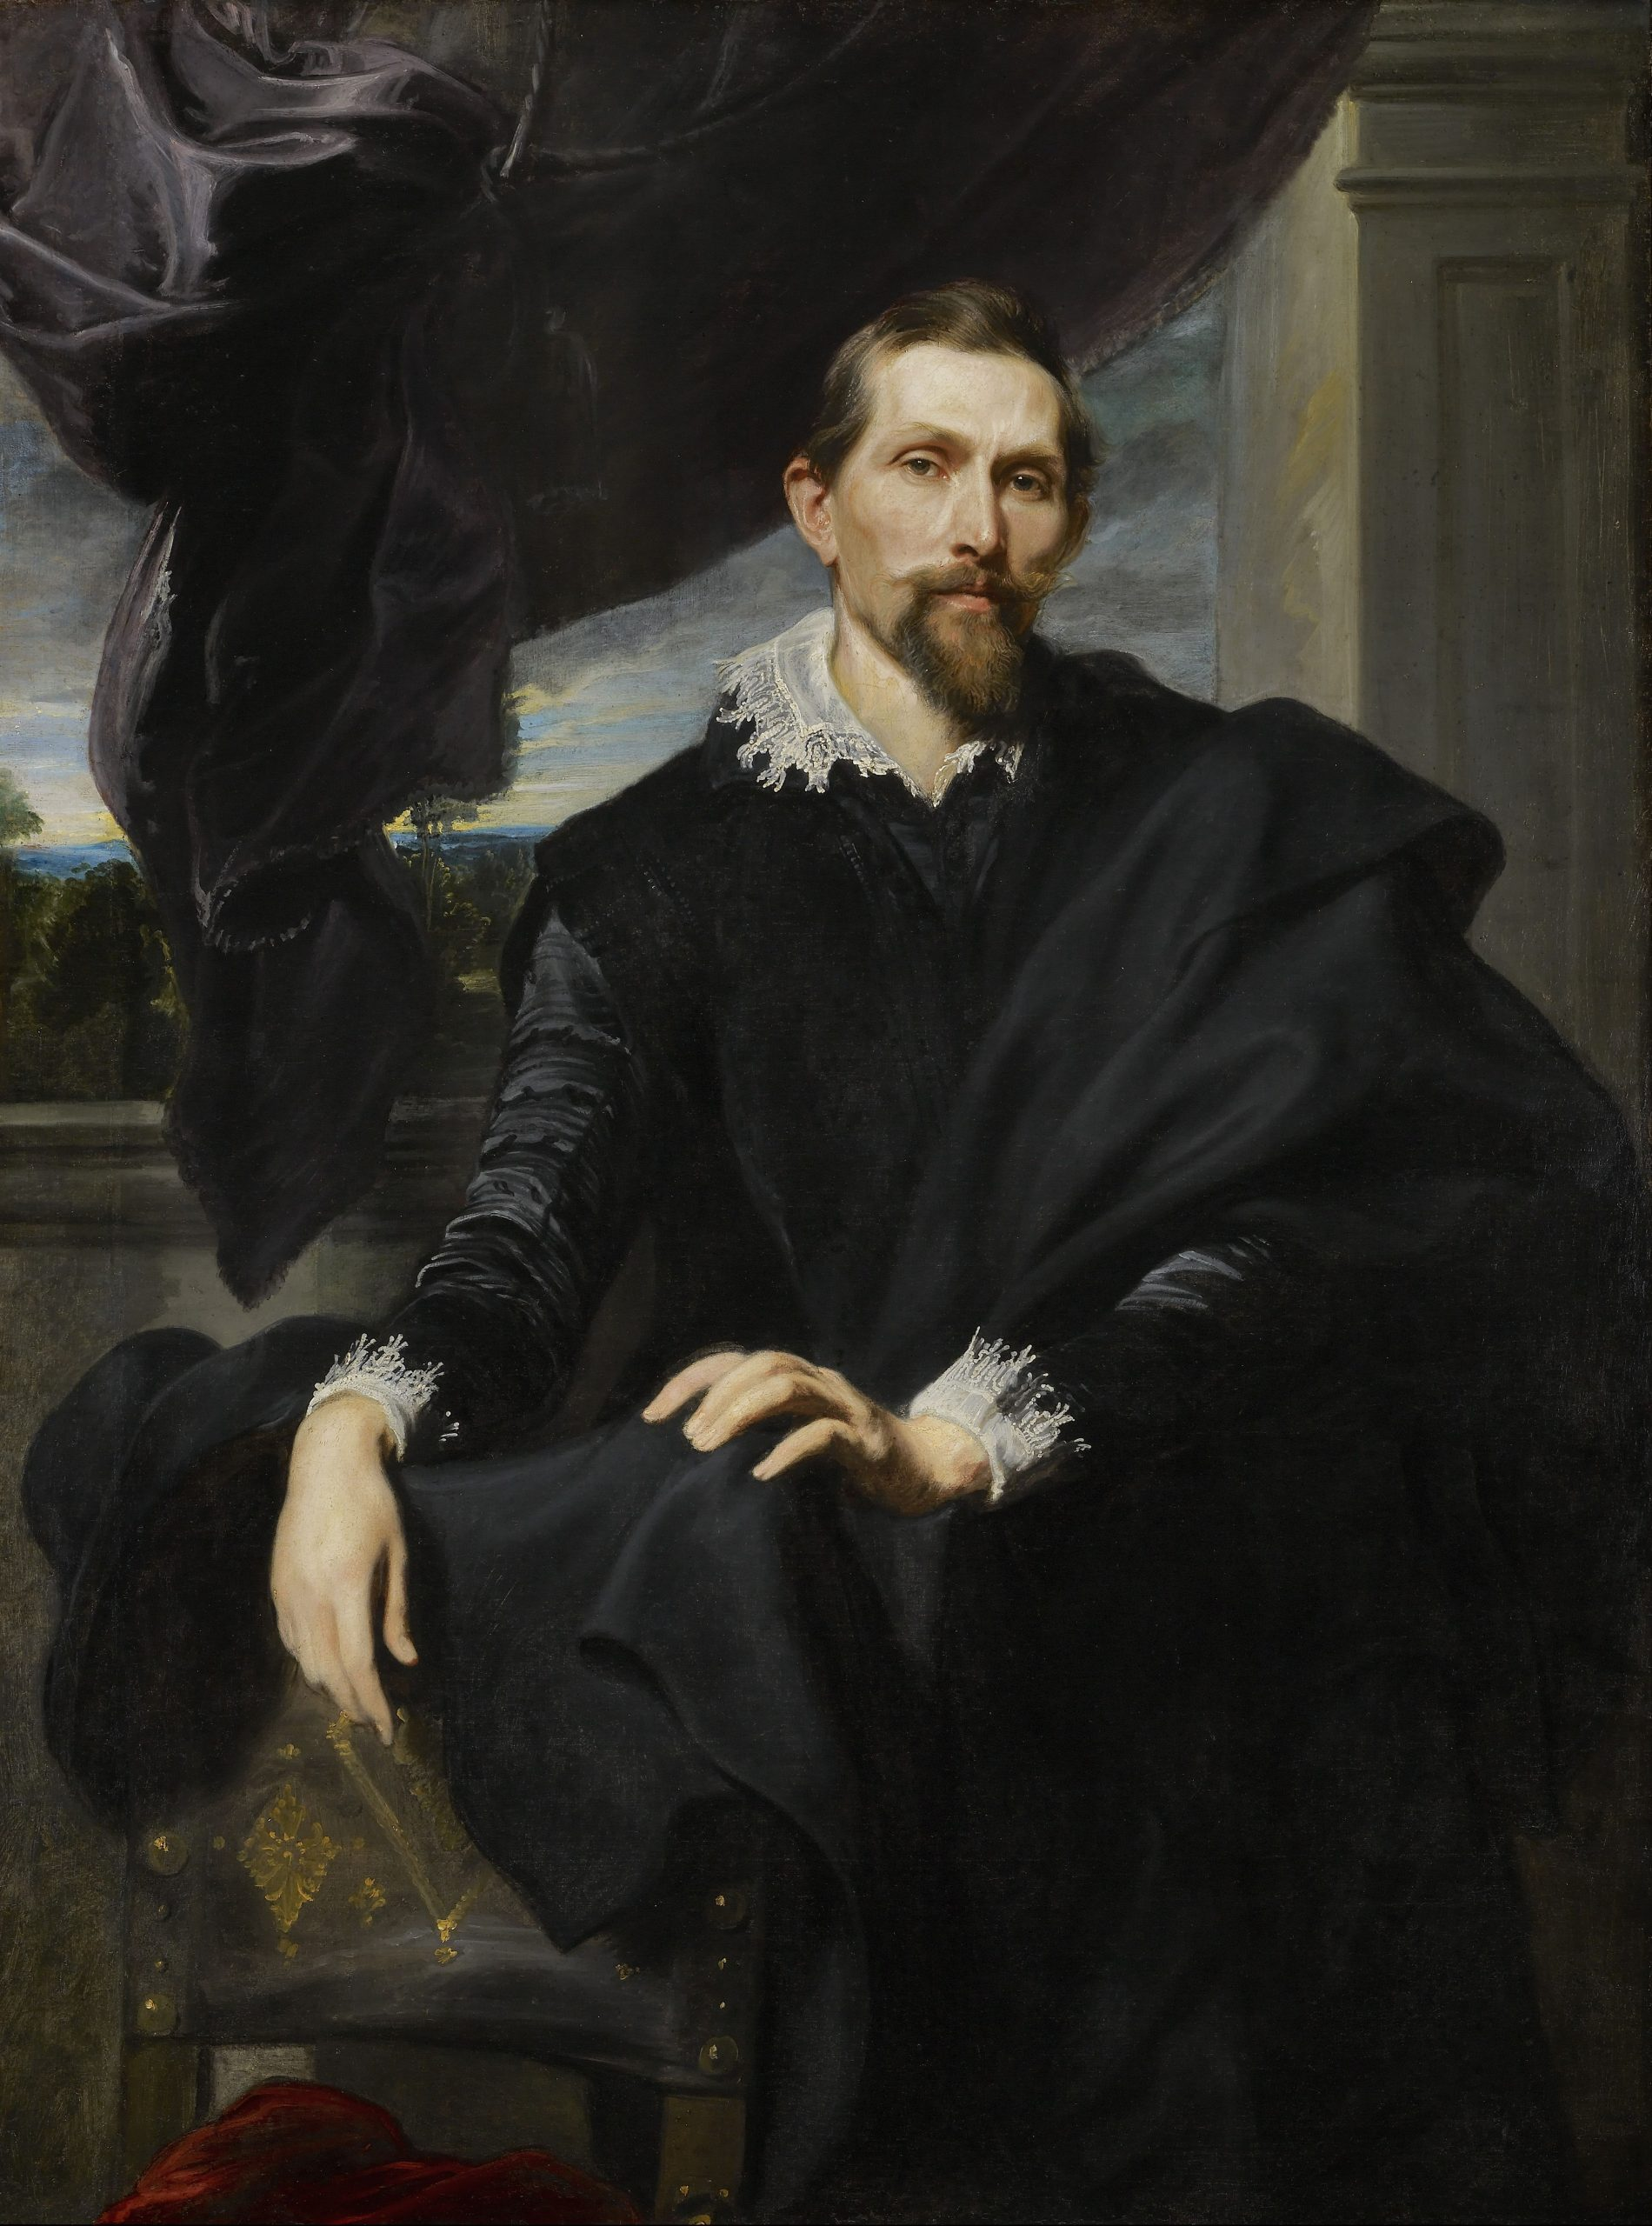 Frans Snyders, Anthony van Dyck, 1620, The Frick Collection